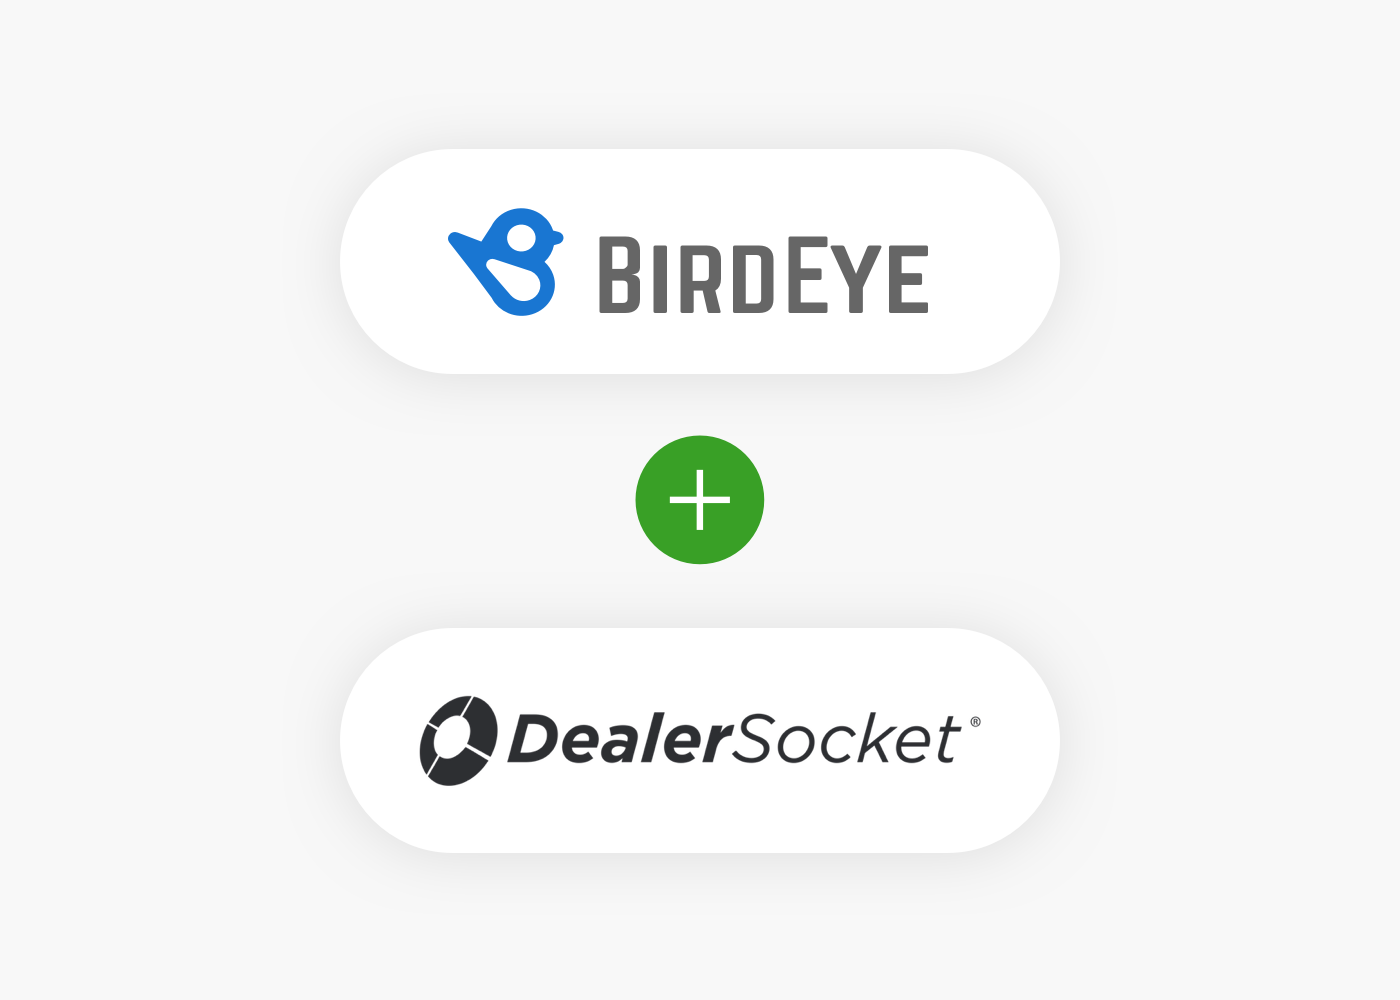 Dealersocket Integrates With Birdeye To Help Automotive Dealerships Grow 1546847397462